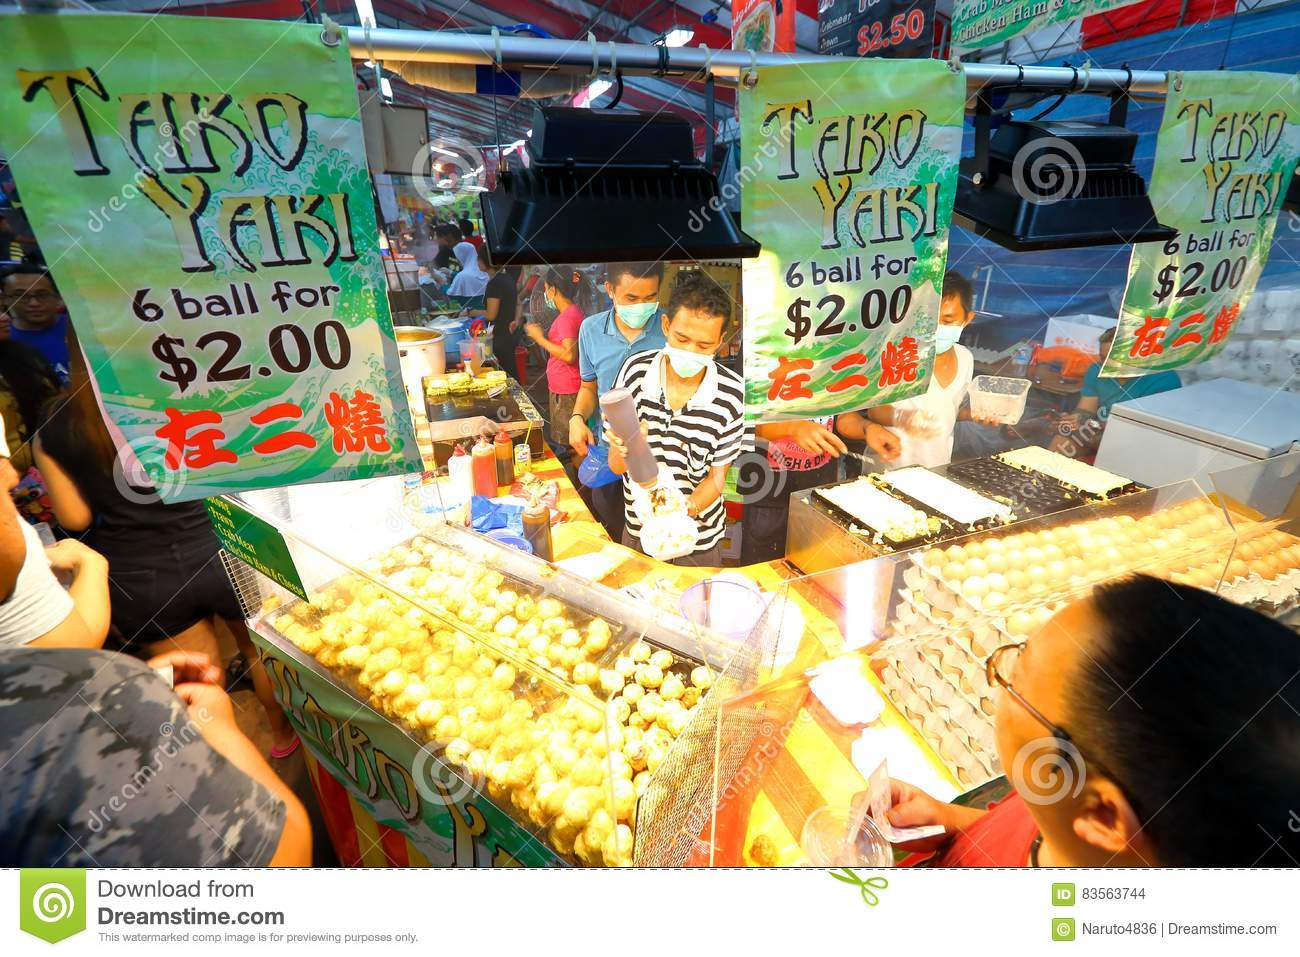 description pasar malam Pasar malam locator: android app (40 ★, 500+ downloads) → pasar malam locator is a demo app that displays pasar malam nearby you this app demo the following feature -.